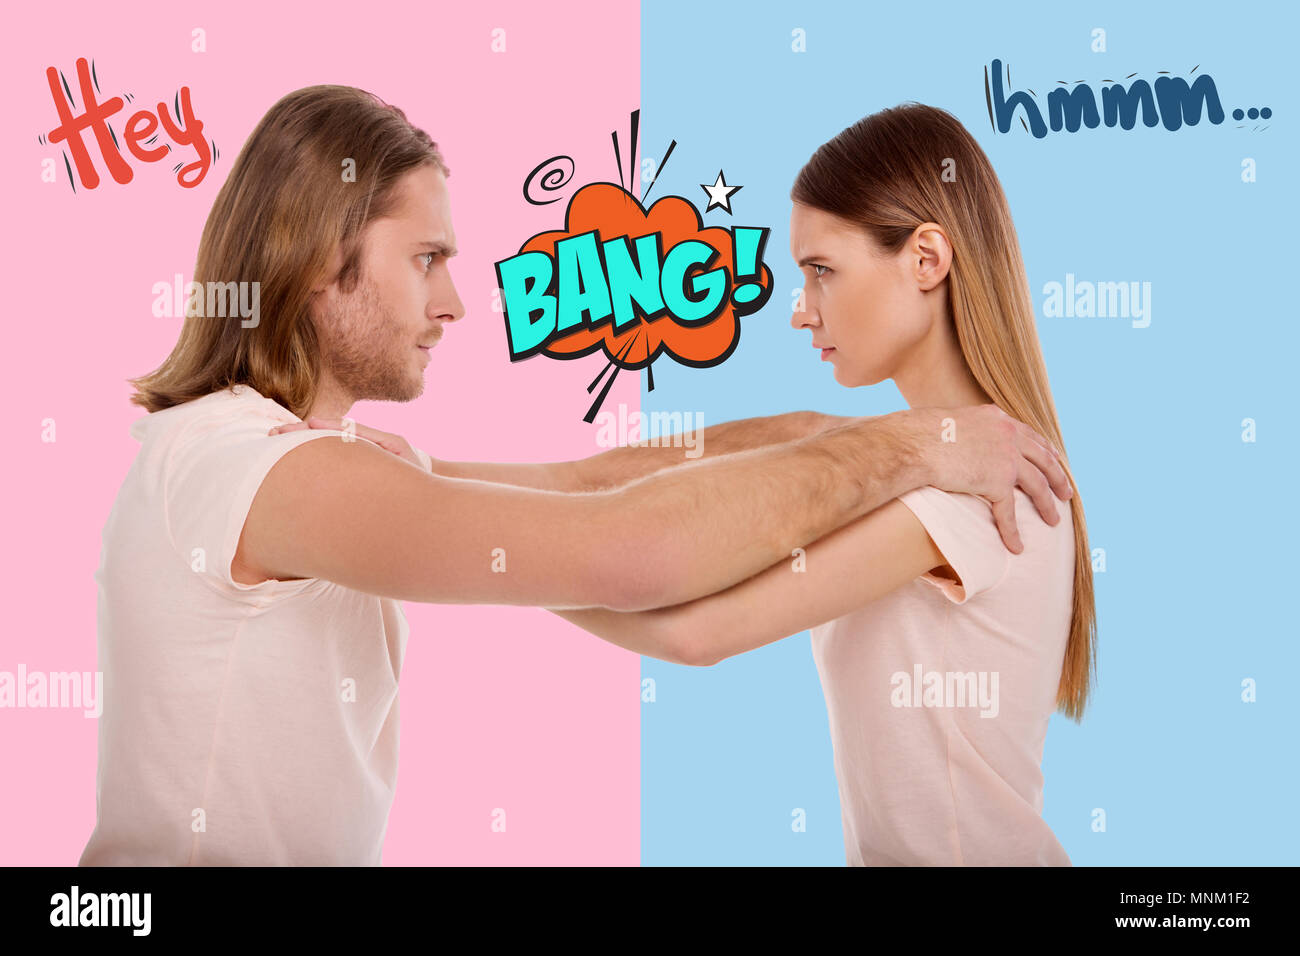 Frowning people putting hands on each others shoulders and looking serious - Stock Image